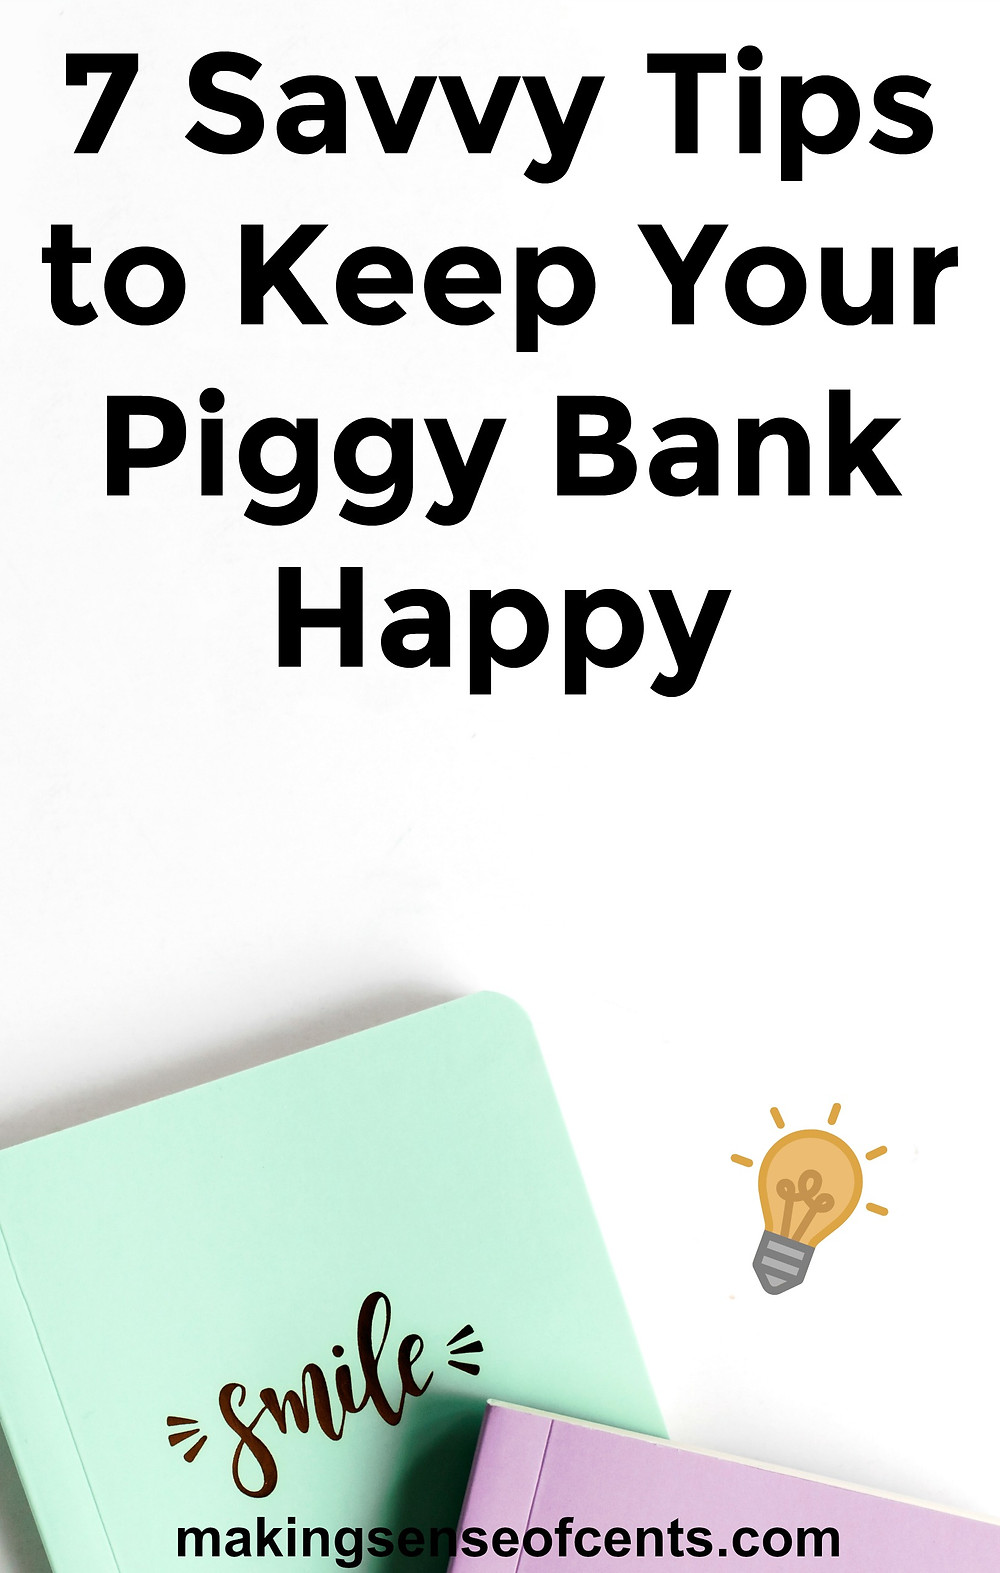 7 Savvy Tips to Keep Your Piggy Bank Happy